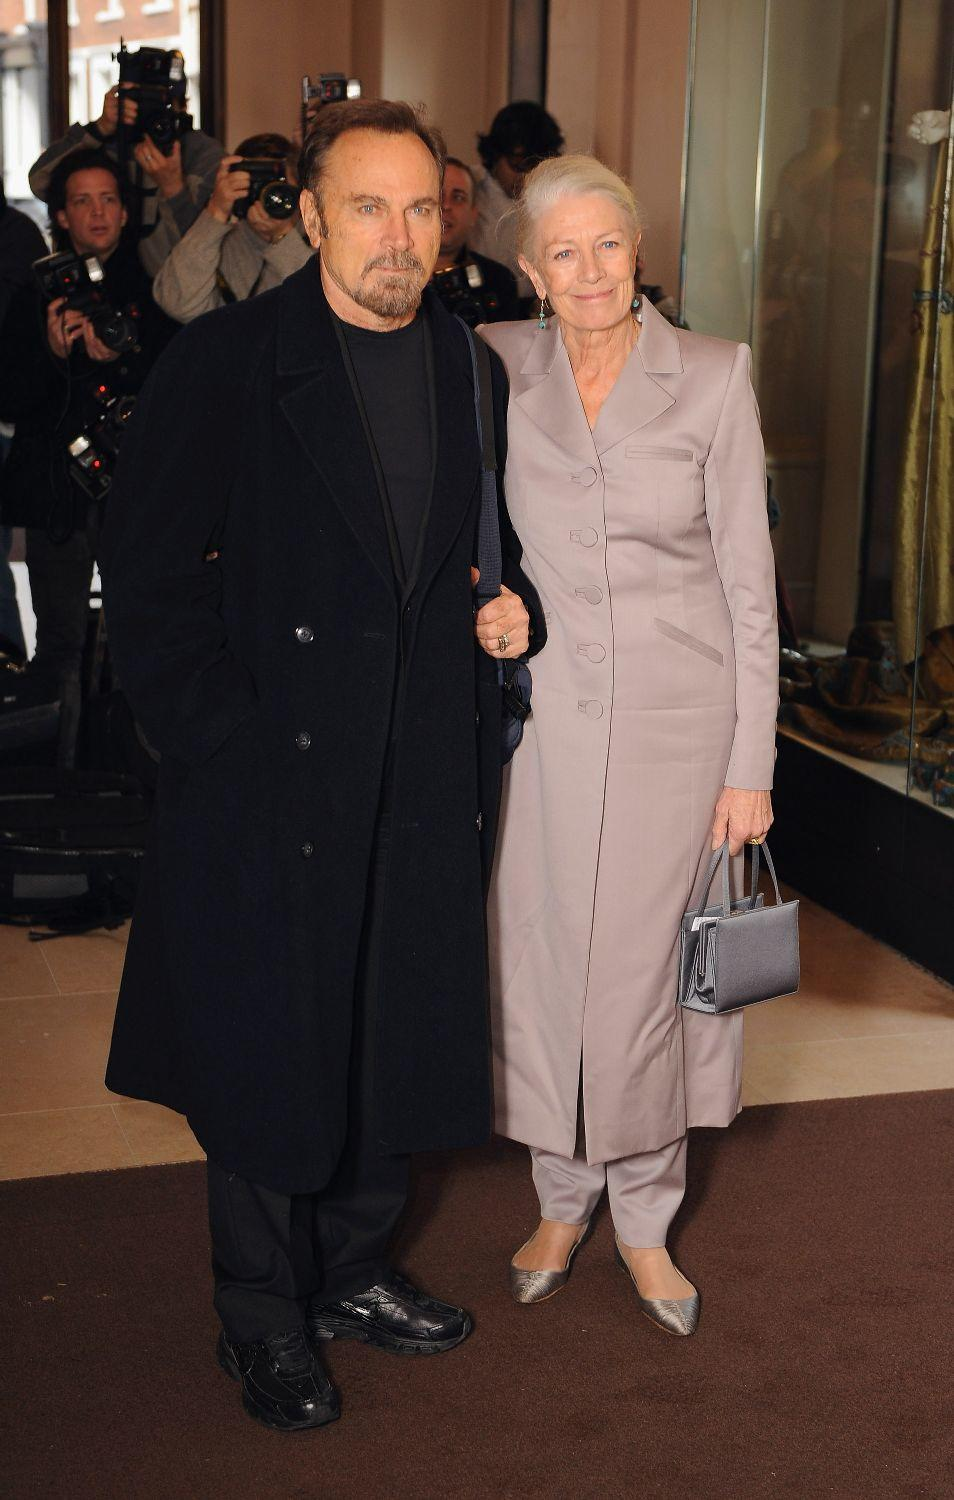 Franco Nero and Vanessa Redgrave at the London Evening Standard Theatre Awards.